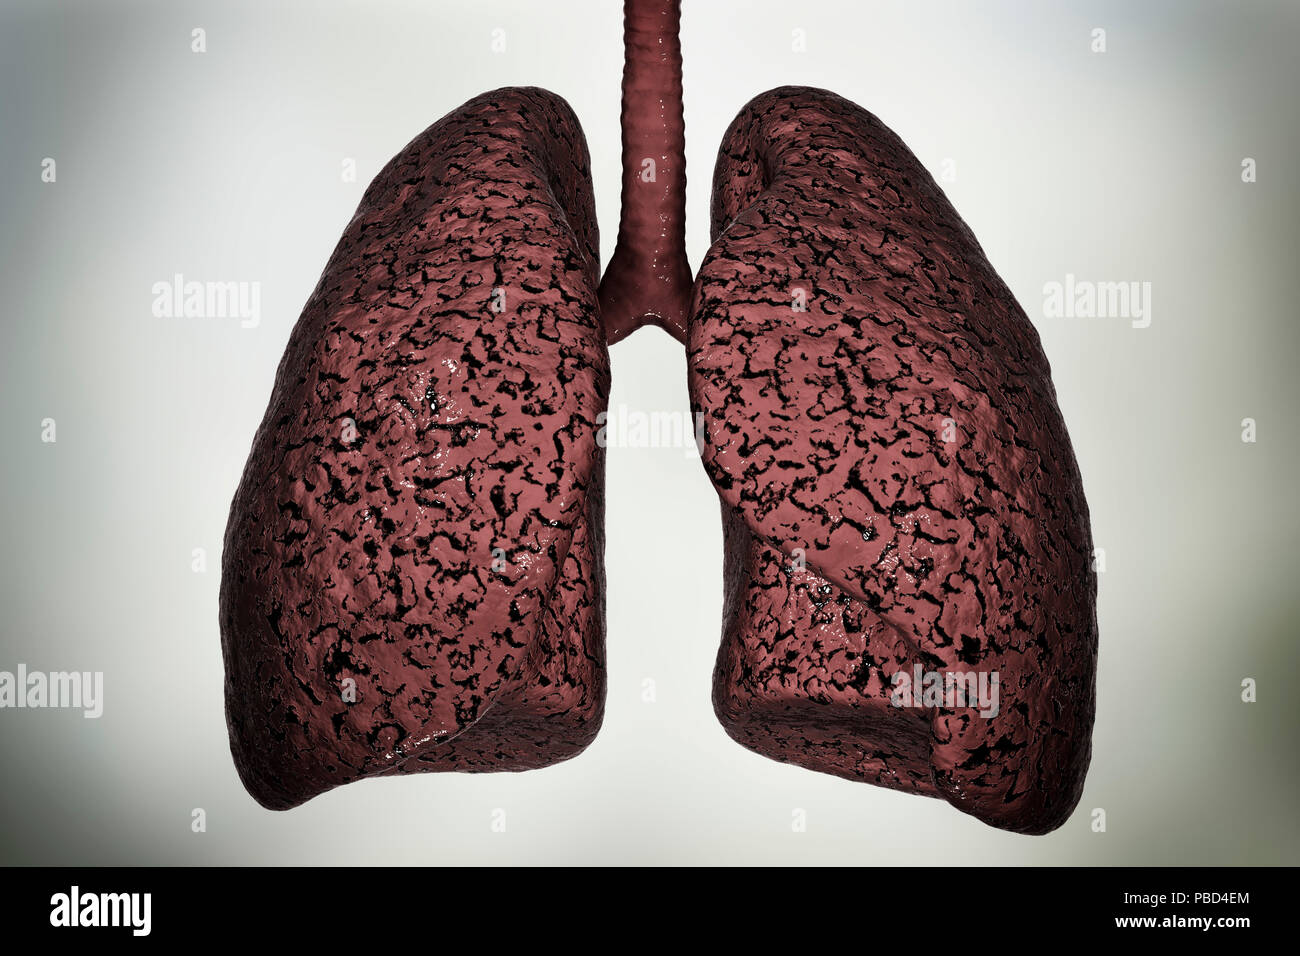 Smoker's lungs, computer illustration. Stock Photo